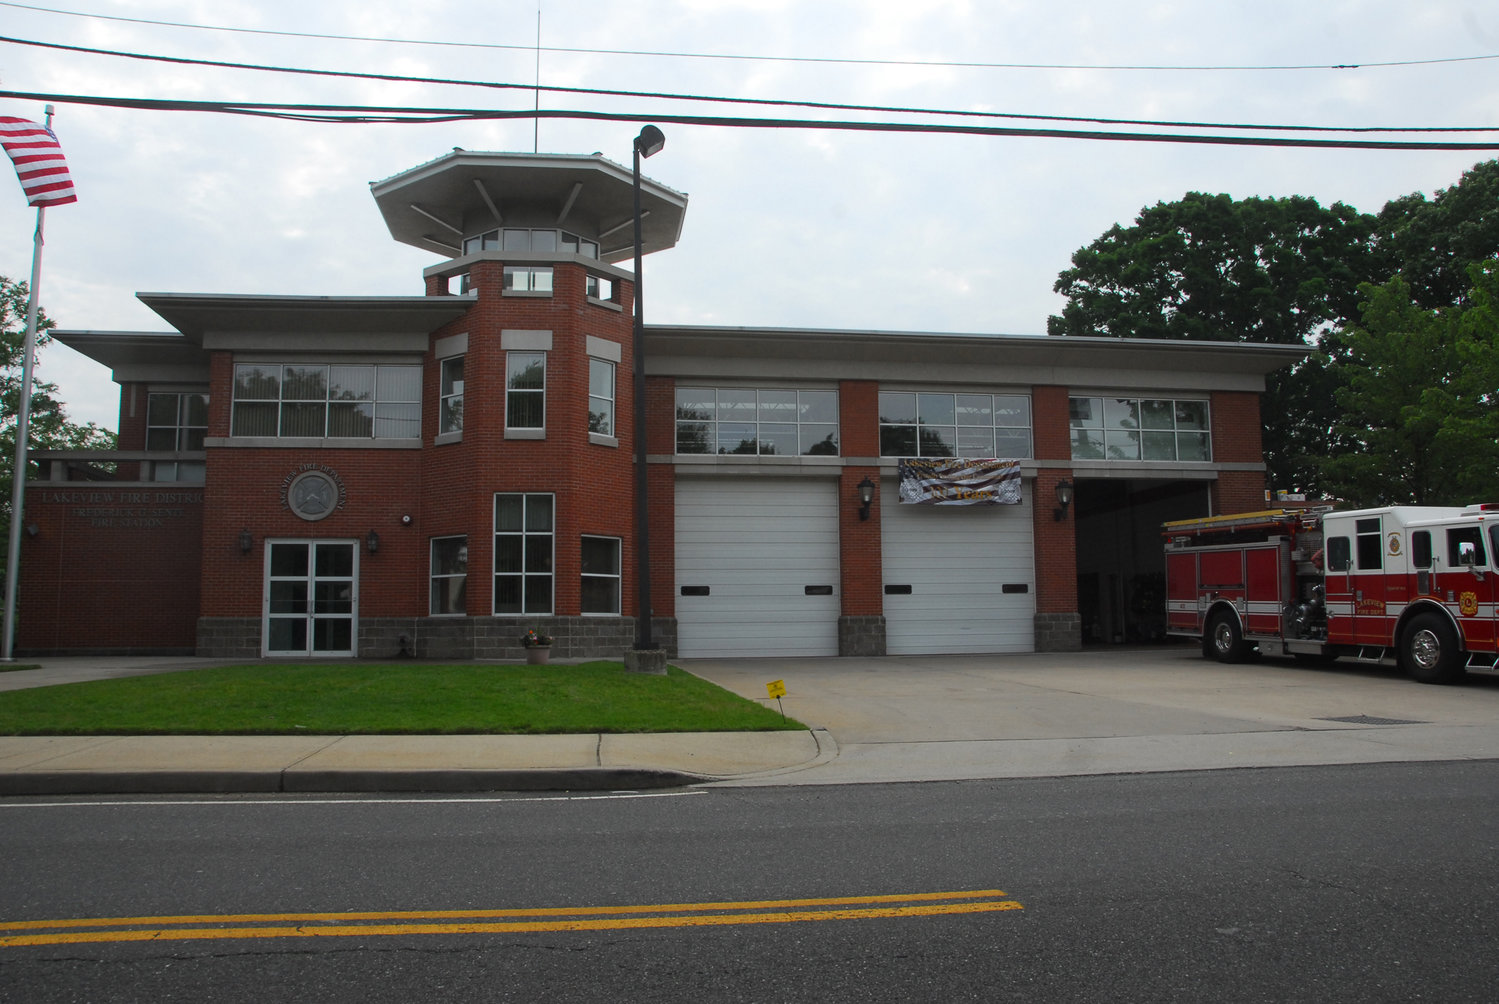 The Lakeview Fire Department is facing a lawsuit for alleged harassment, which was filed by former Lakeview firefighter Yonatan Klein on March 19.